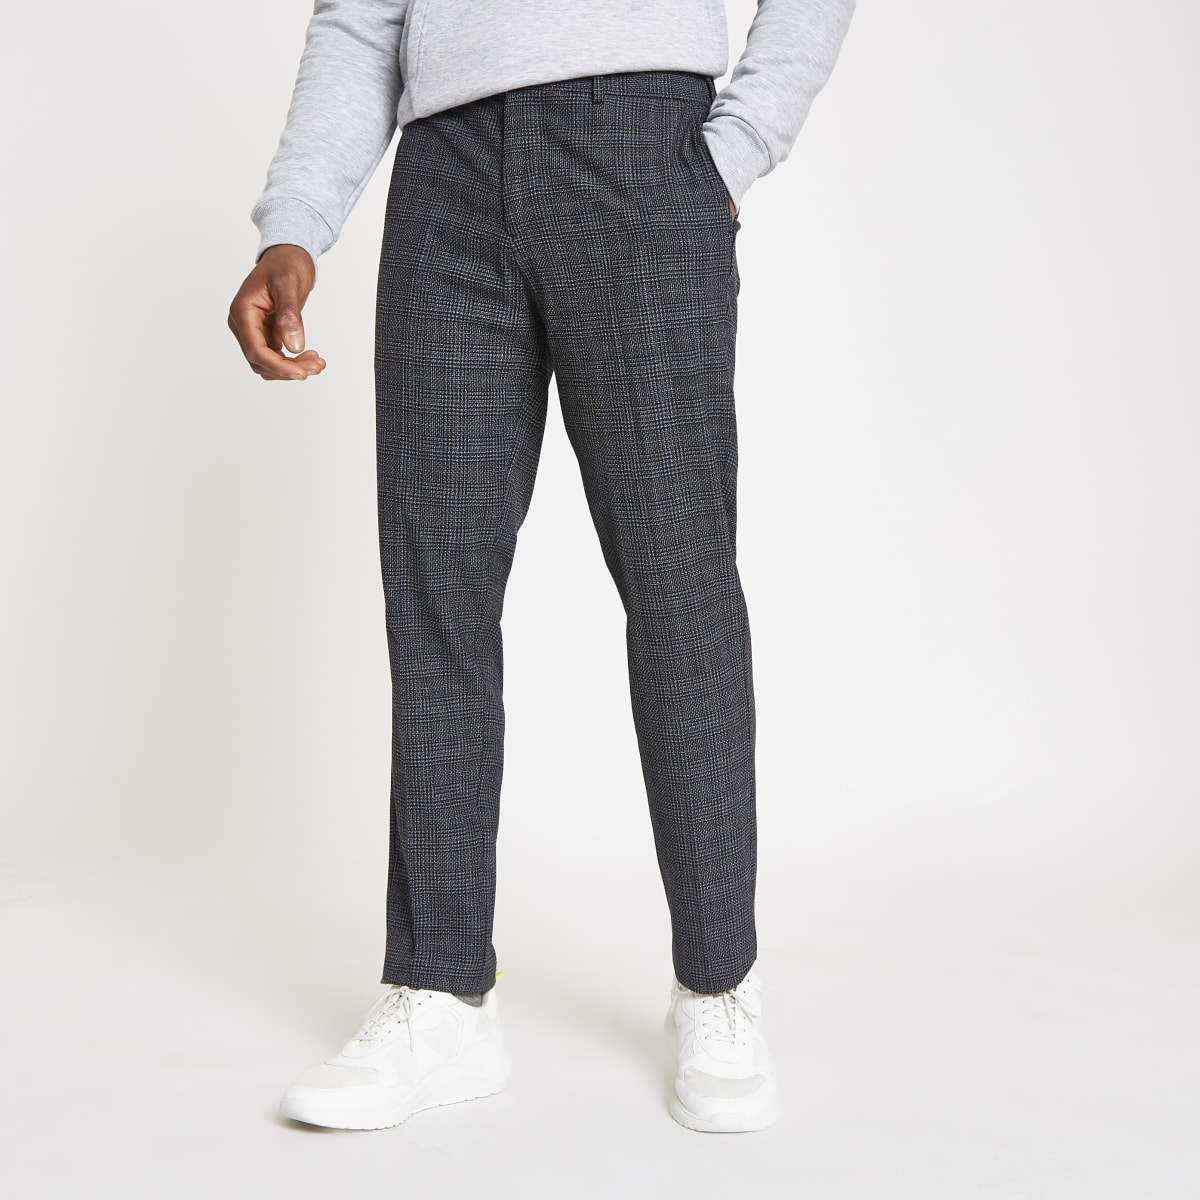 Selected Homme grey check tapered trousers